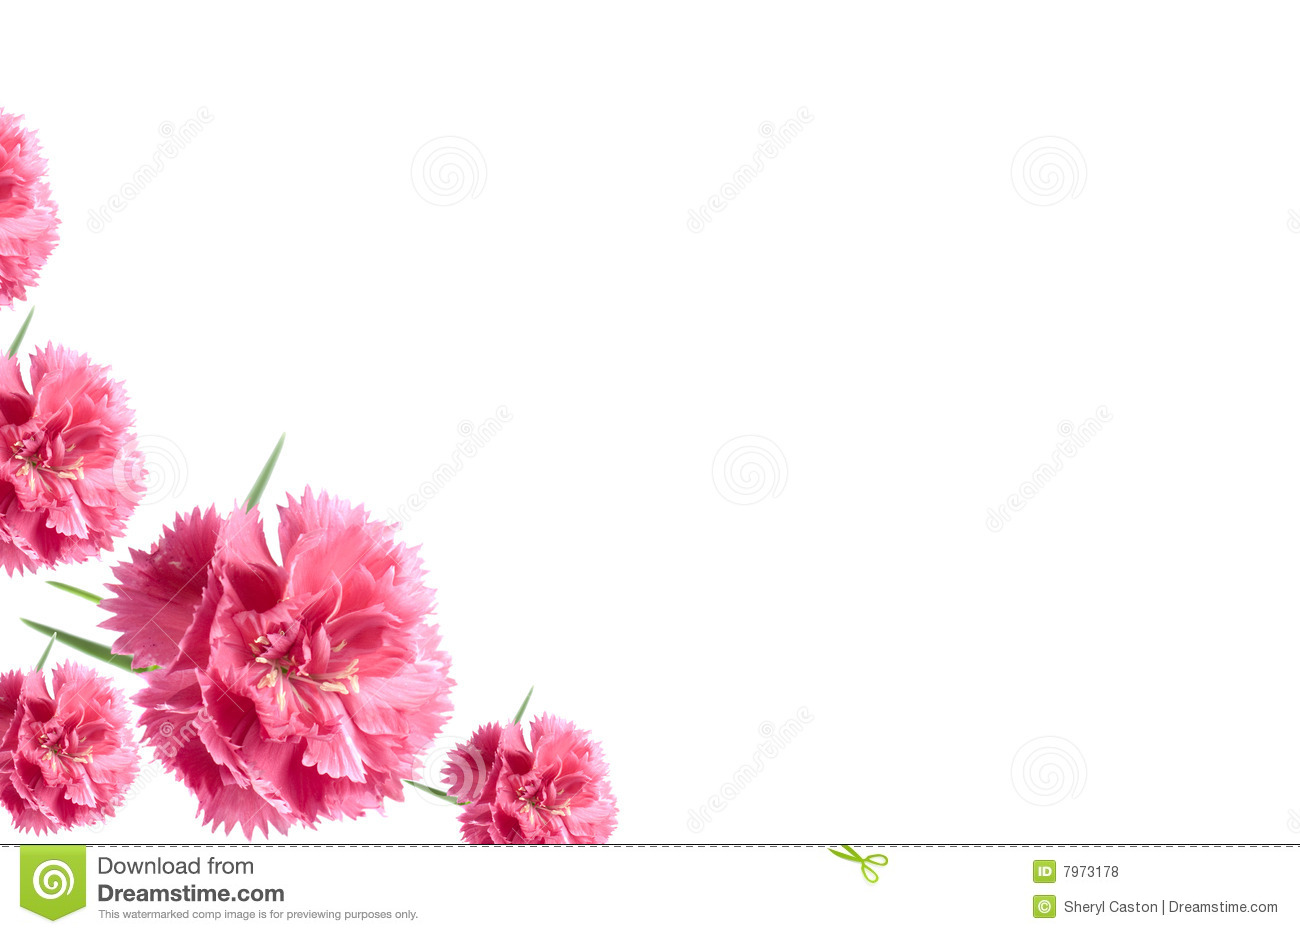 Happy Mothers Day Hd Wallpaper Valentine Flowers Card Background Pink Carnations Royalty